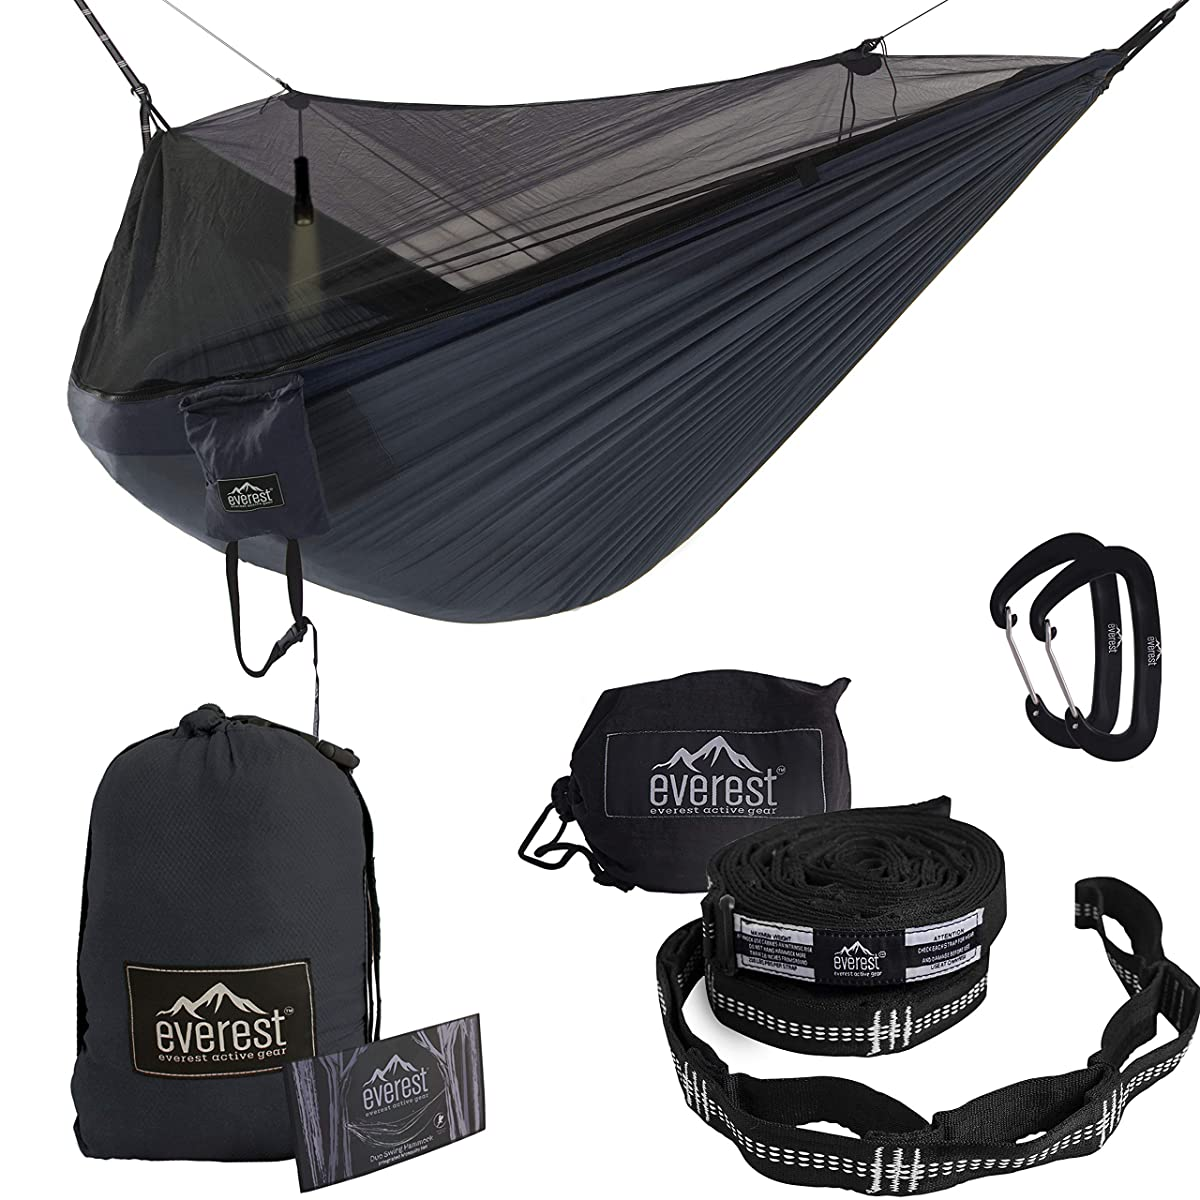 Everest Double Camping Hammock with Mosquito Net   Bug-Free Camping, Backpacking & Survival Outdoor Hammock Tent   Reversible, Integrated, Lightweight, Ripstop Nylon